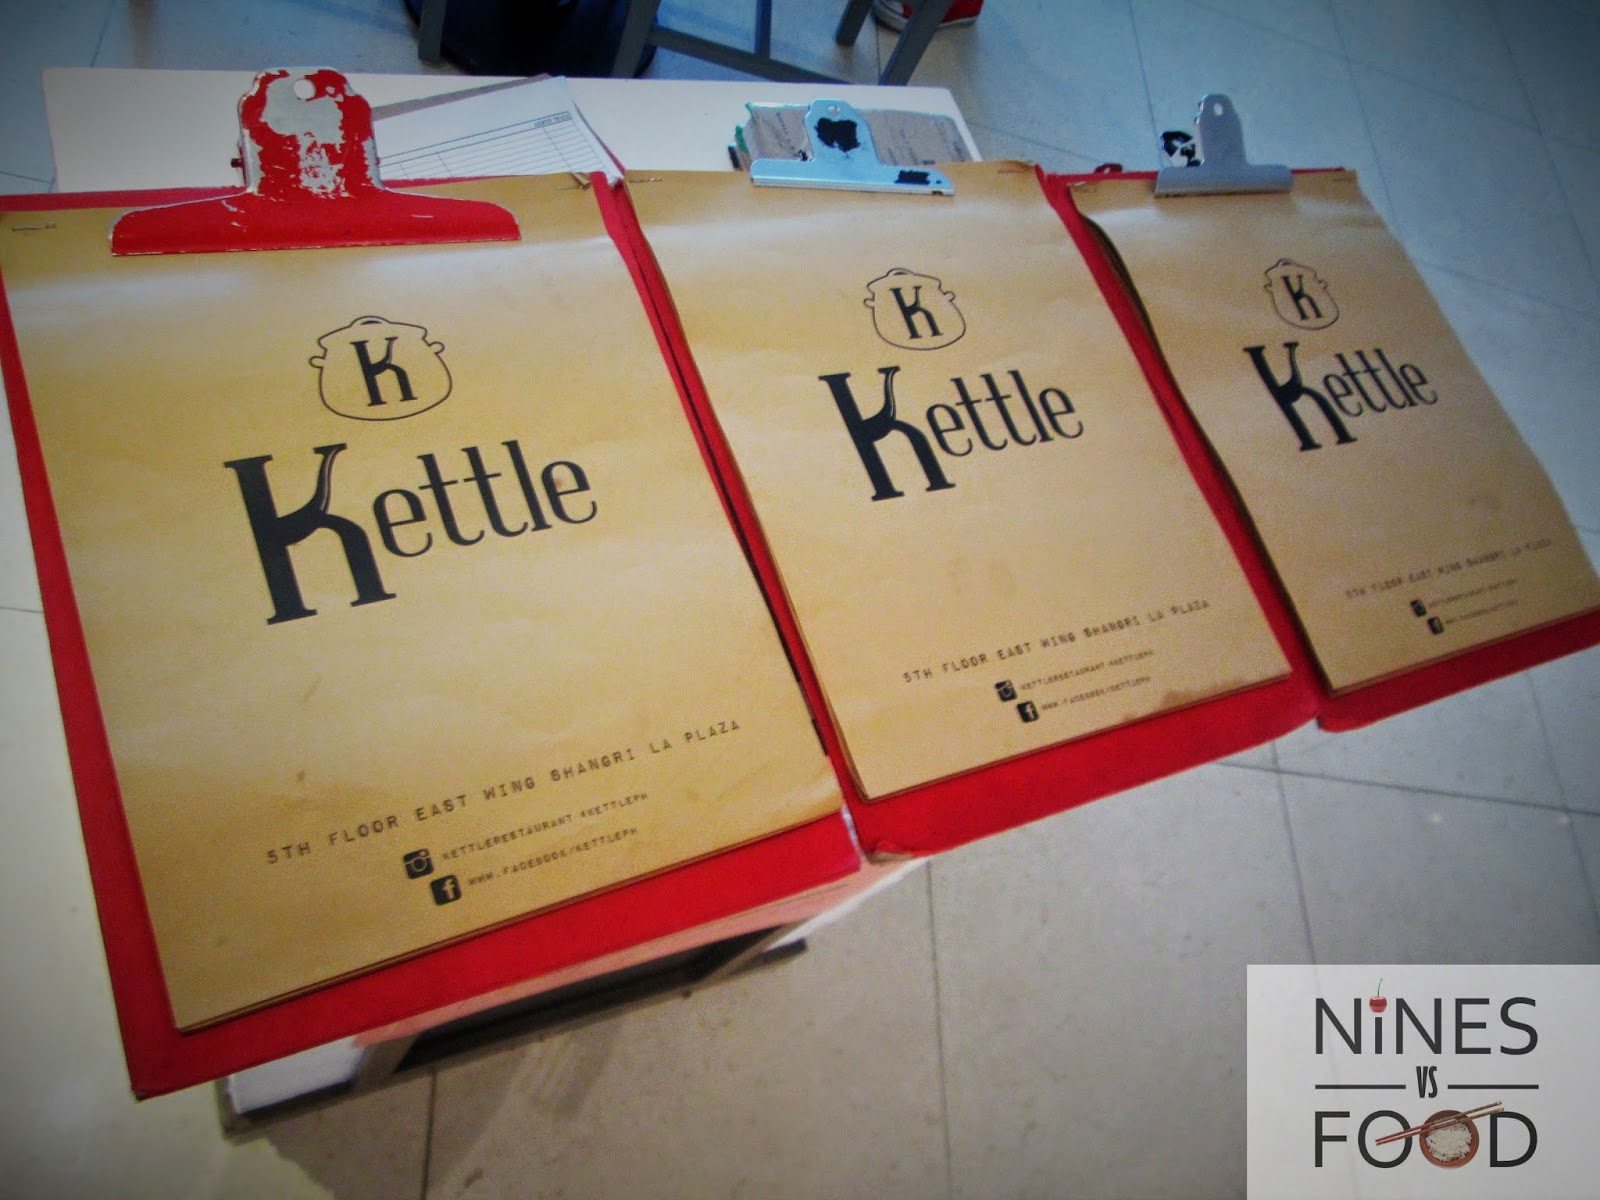 Nines vs. Food - Kettle Shangri-la East Wing-19.jpg